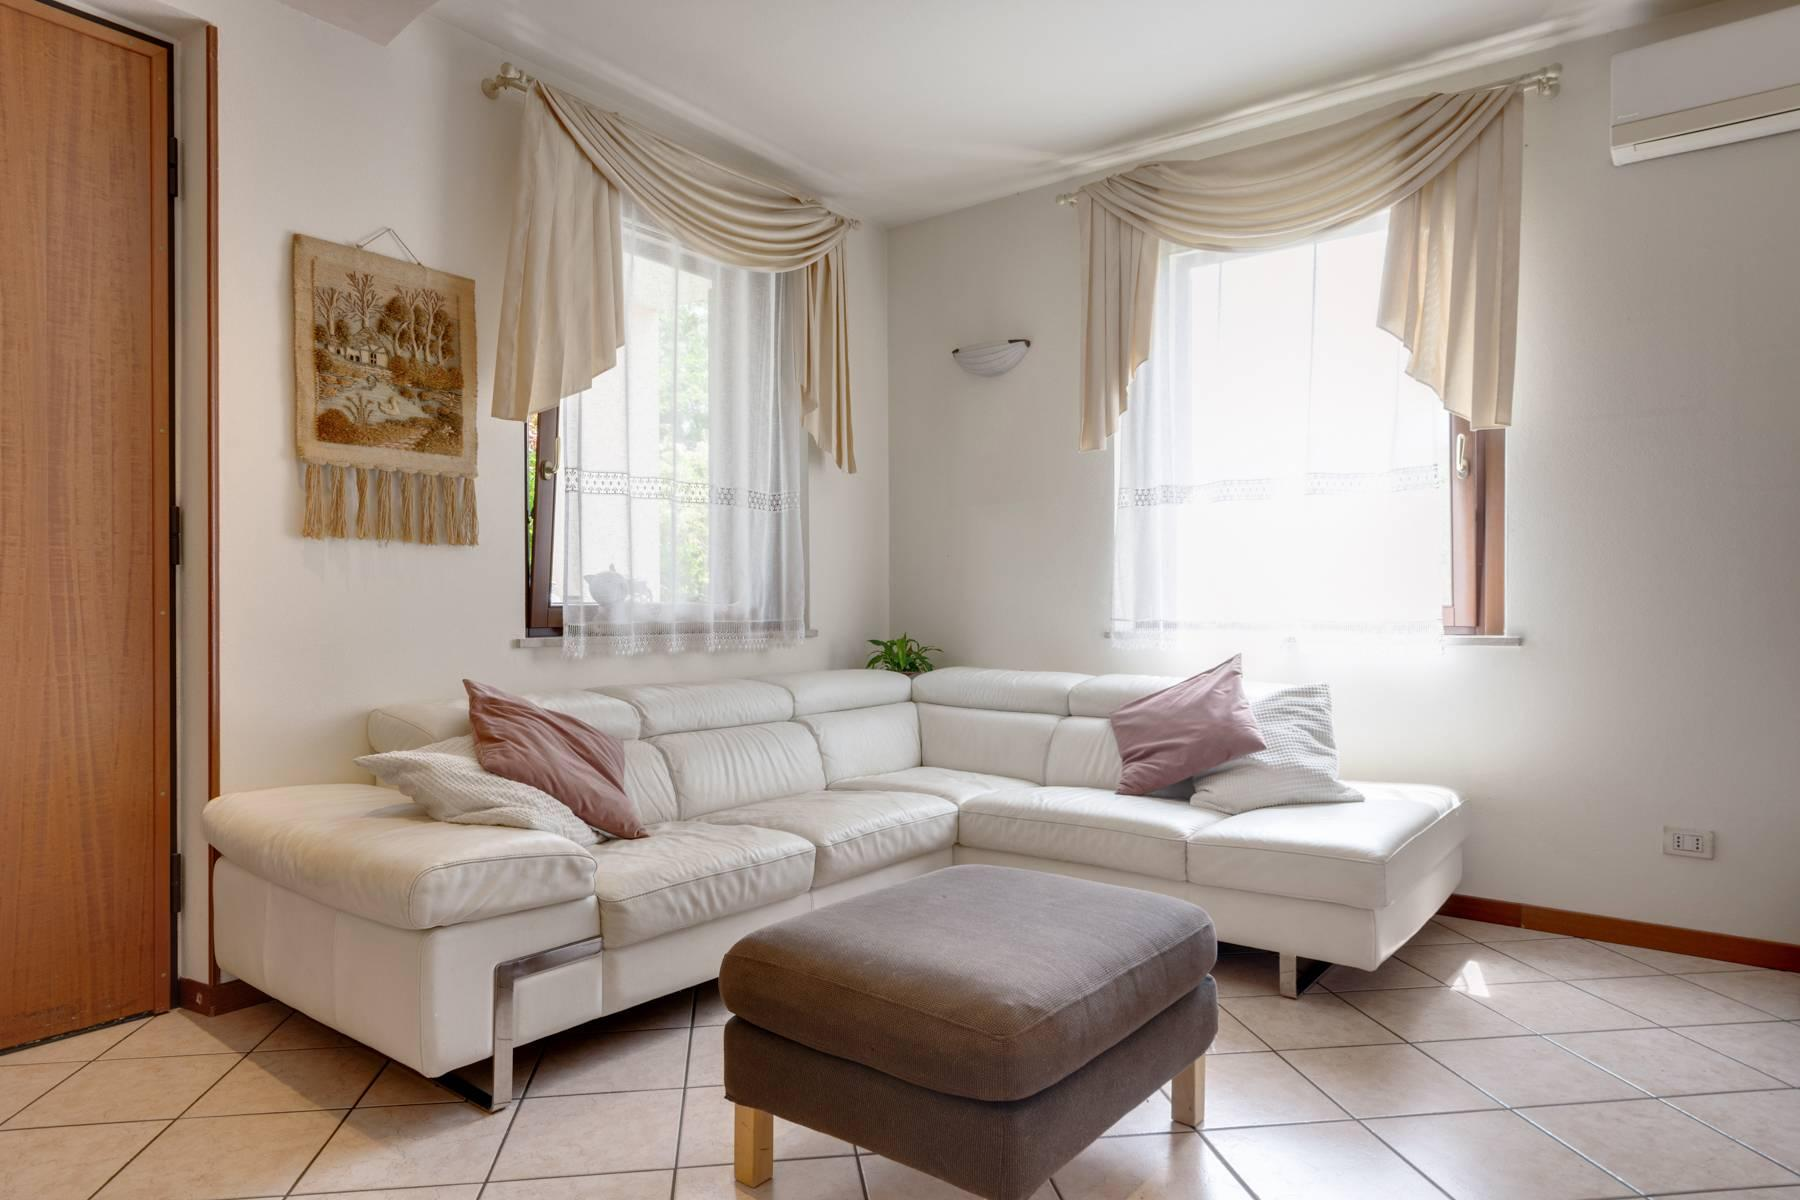 Independent villa with wide garden, just a few steps from the Lake - 10